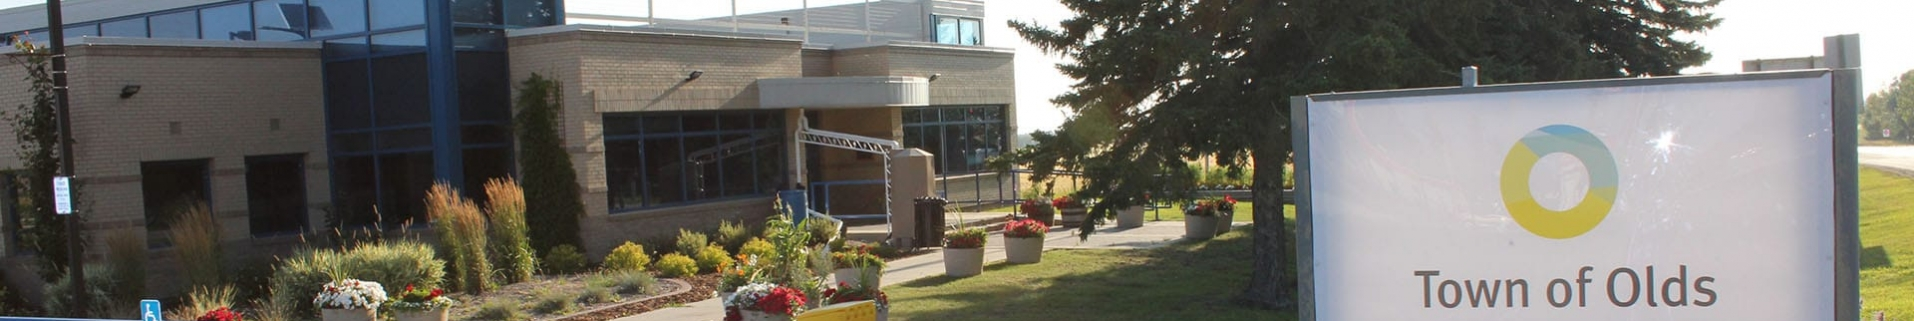 """Sign that says """"Town of Olds"""" outside a concrete building"""